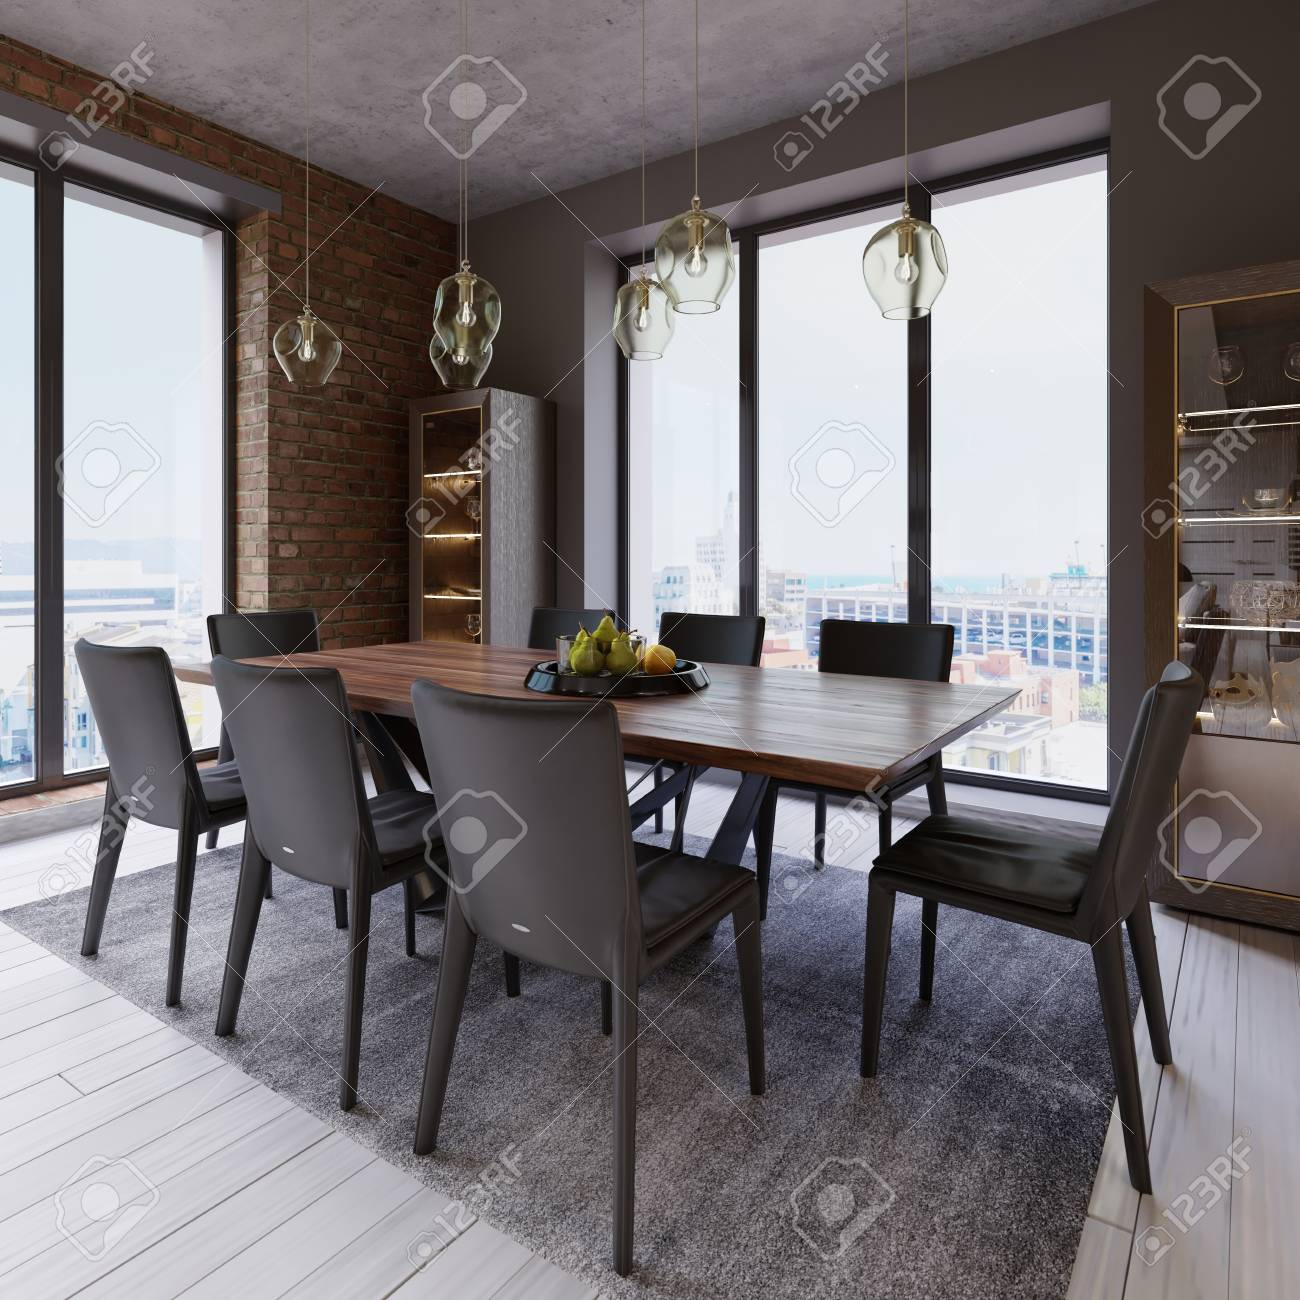 Cozy loft with dining table, chairs and storage racks. 3d rendering